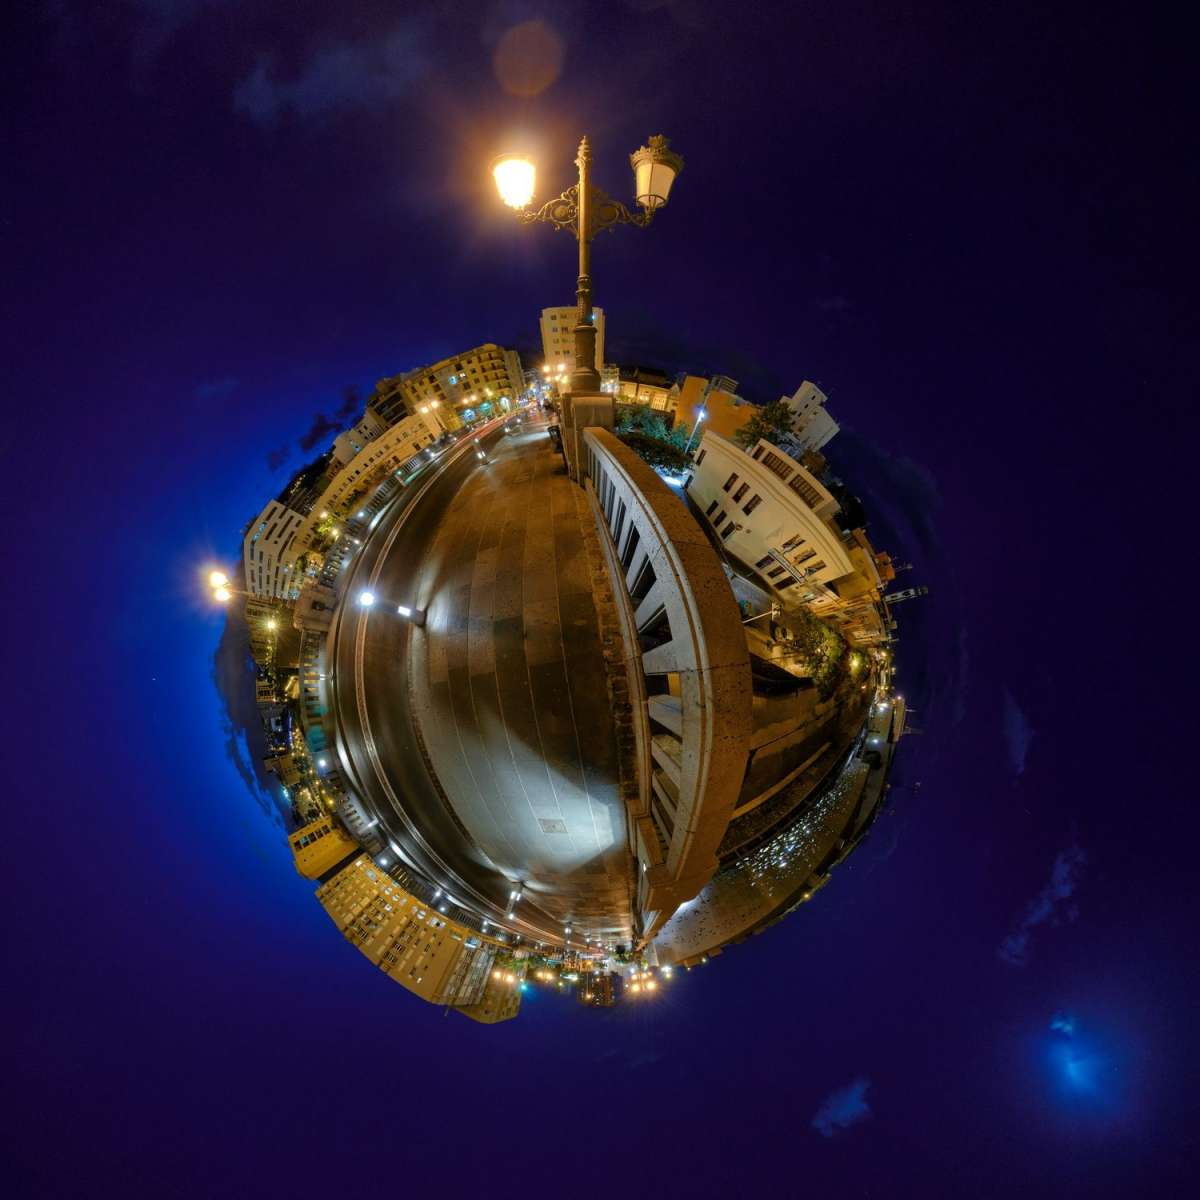 La Laguna Little planet